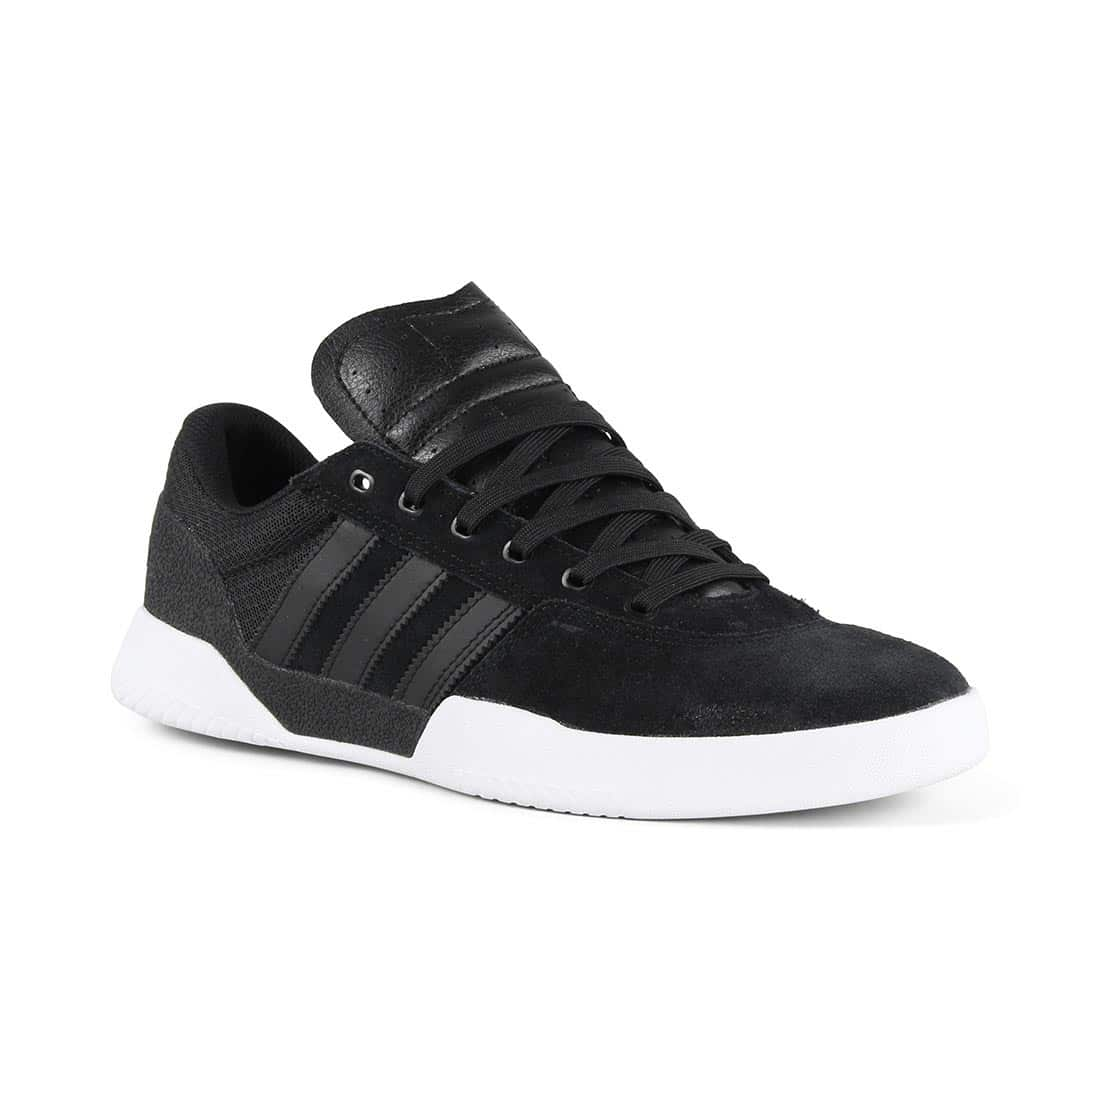 Black White Shoes Cup Adidas Core City 8mnNwv0